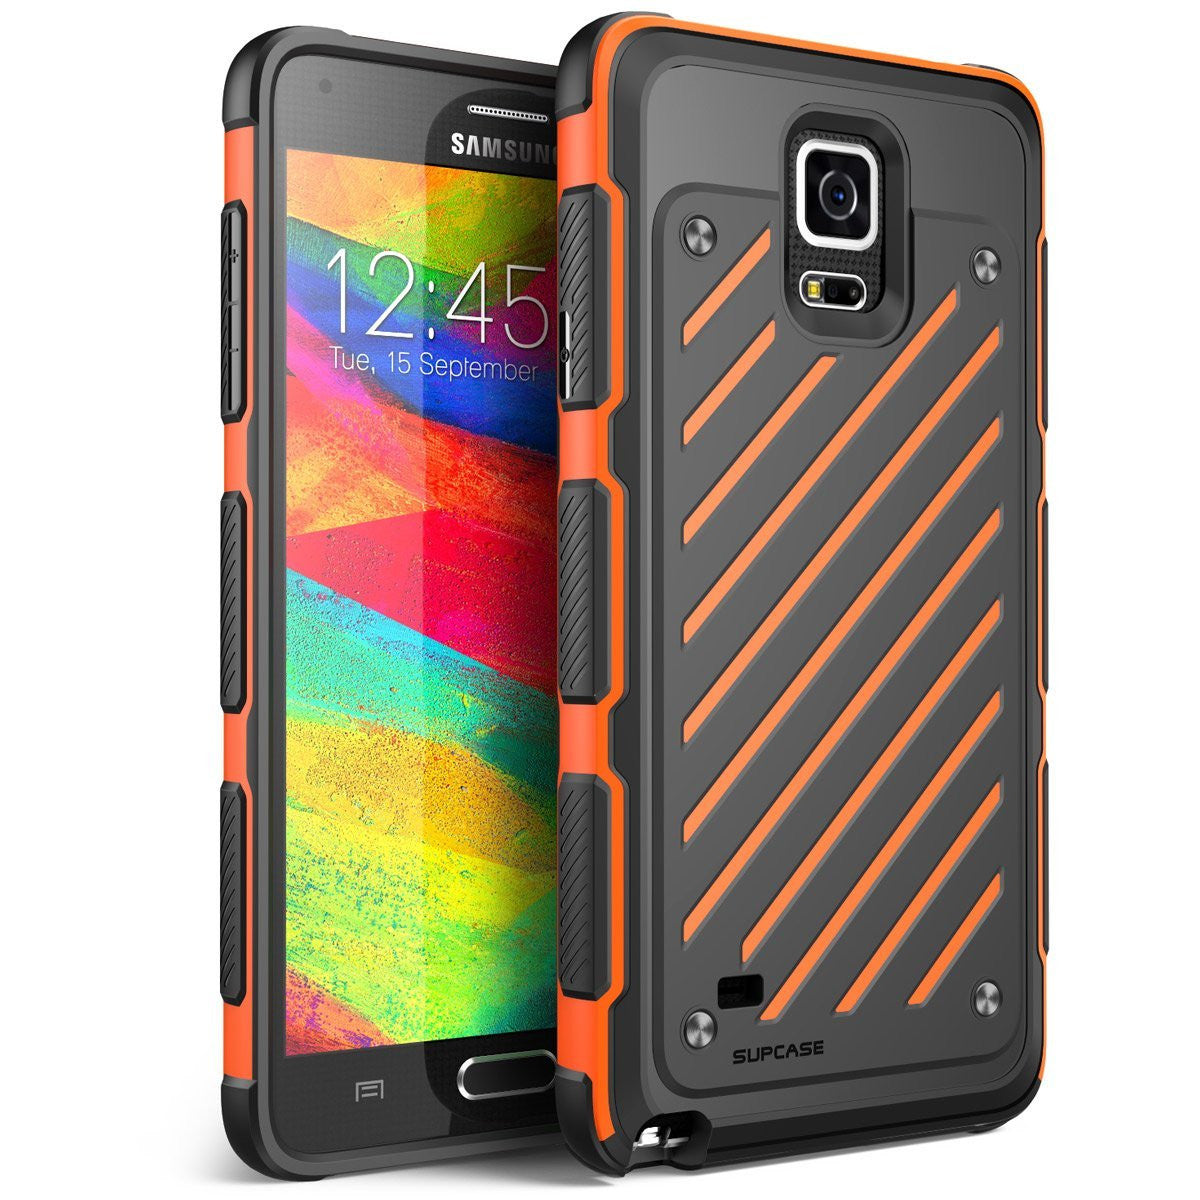 Genuine SUPCASE For Galaxy Note 4 S Series Slim Armored Case Cover